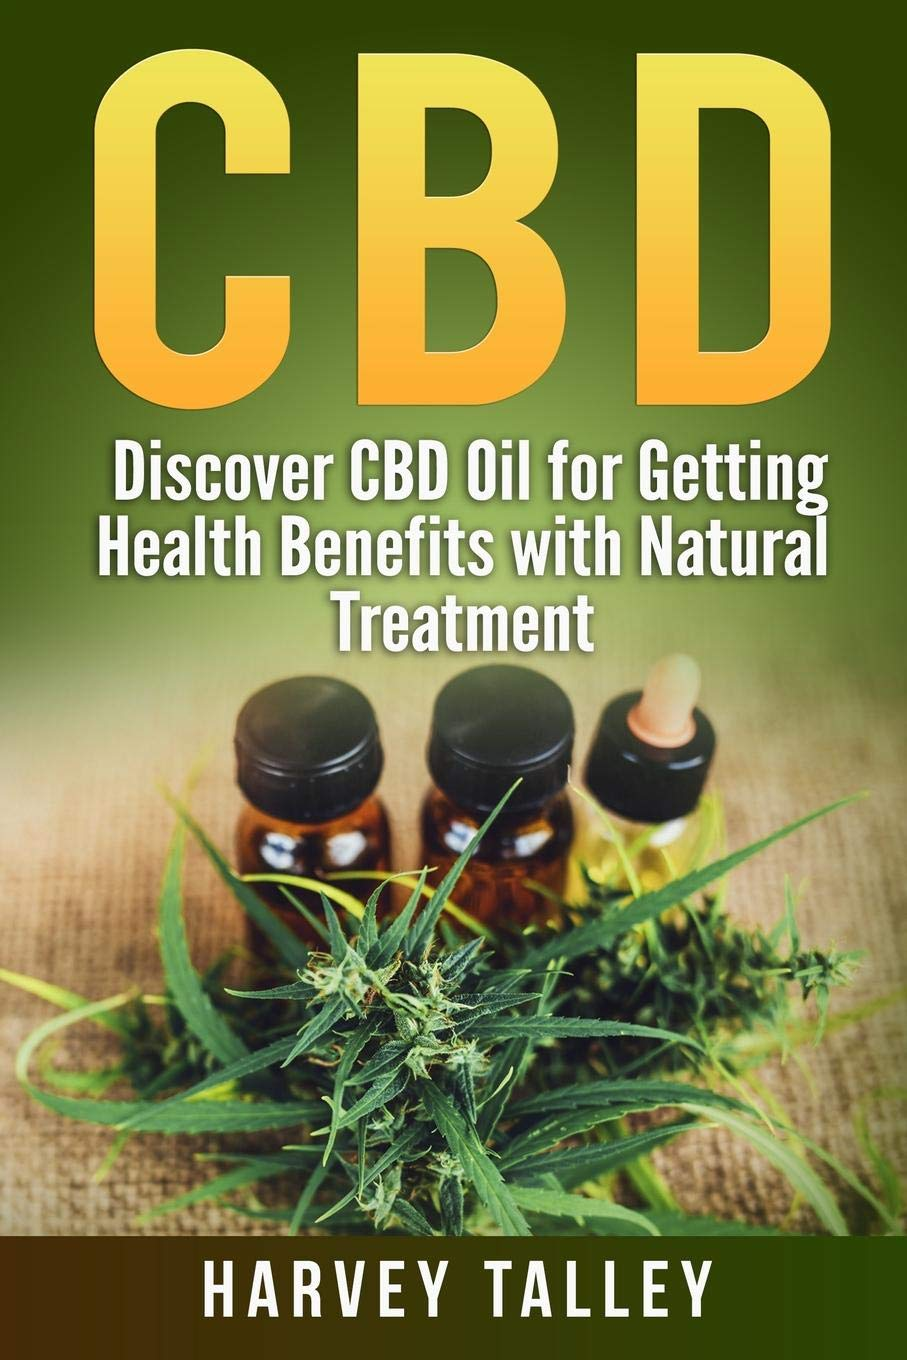 CBD: Discover CBD Oil for Getting Health Benefits with